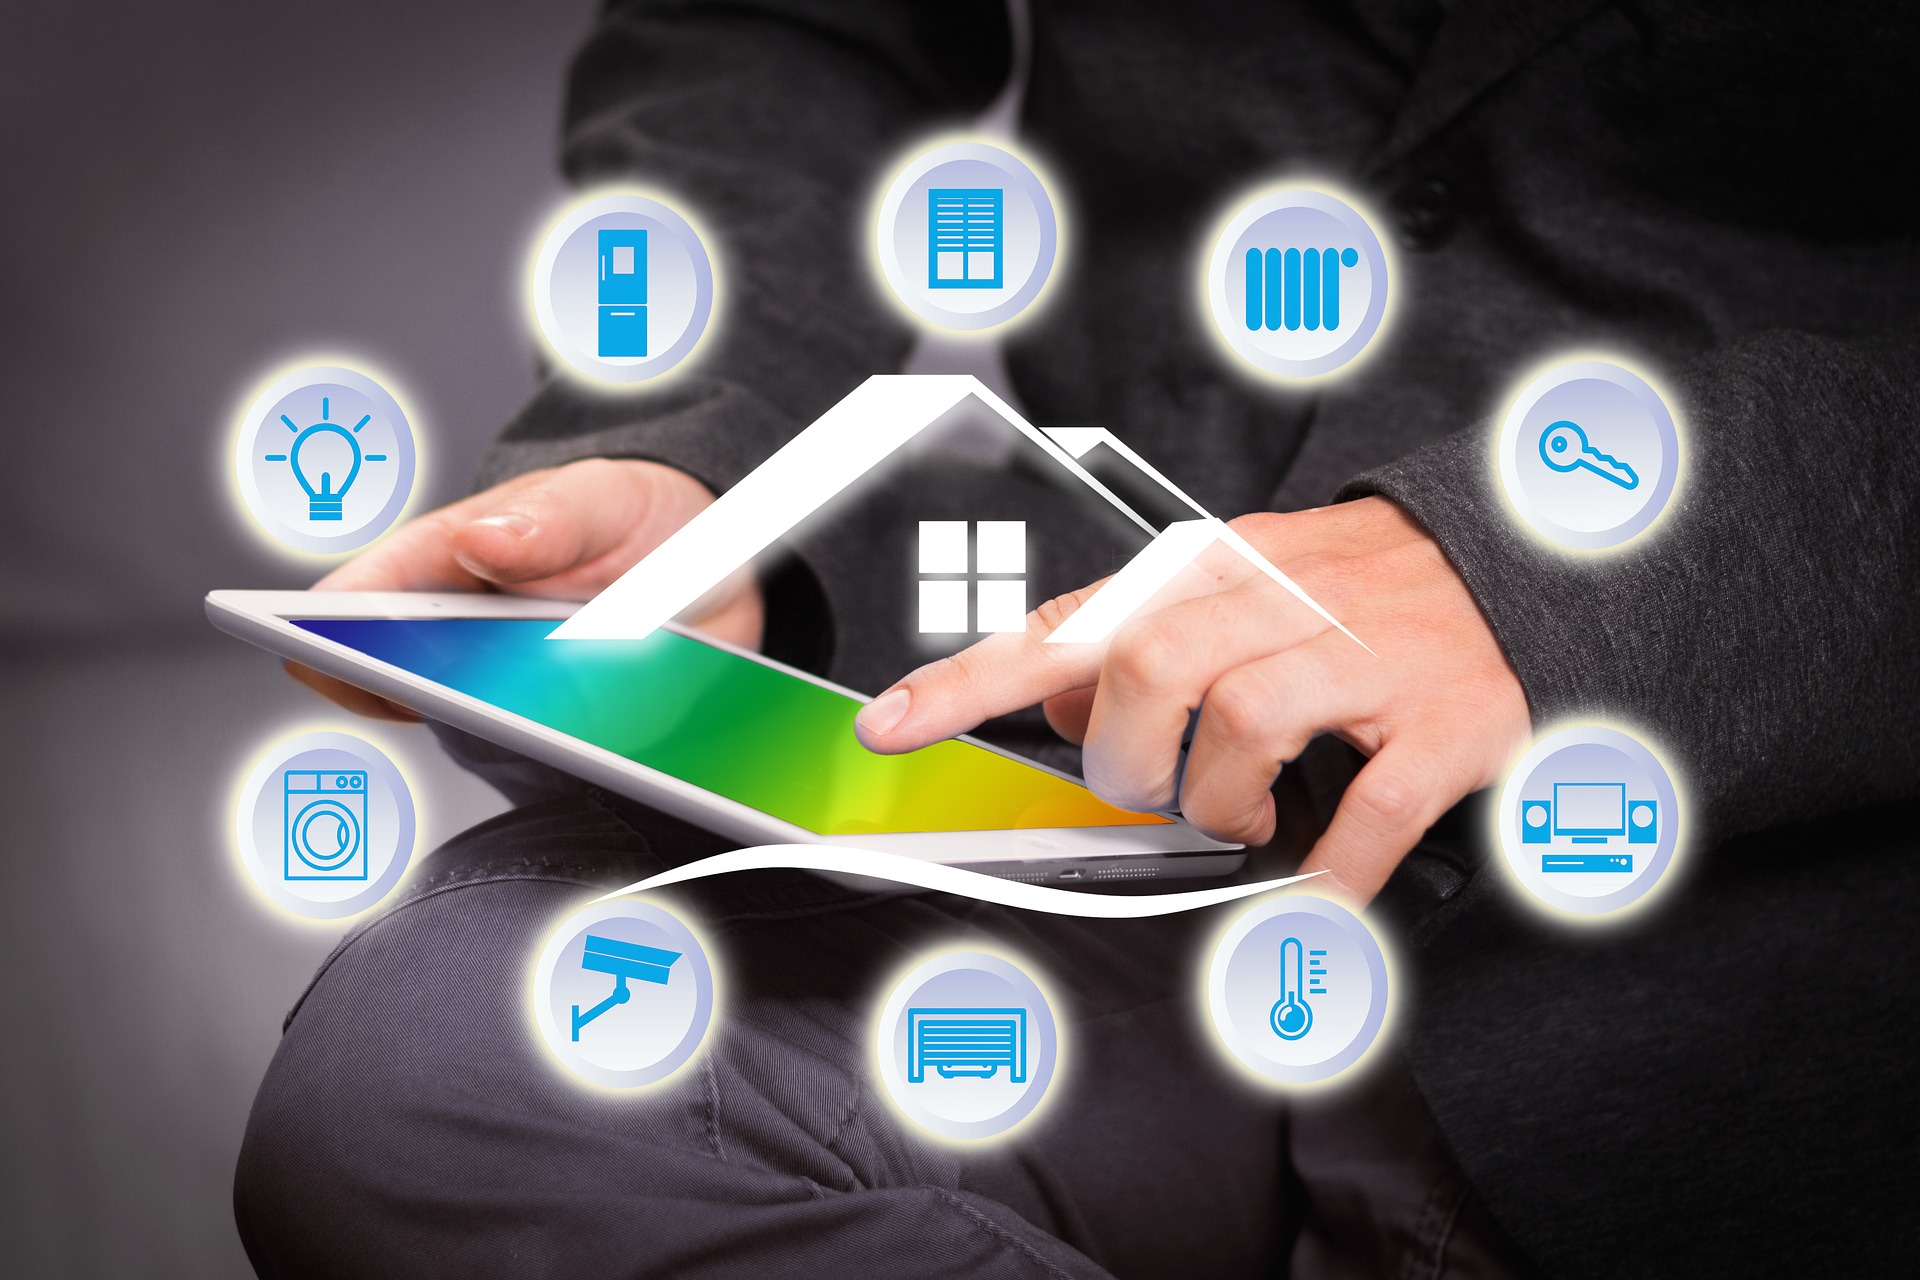 IoT, Smart sensors, smart cities, energy efficiency, smart home, smart building